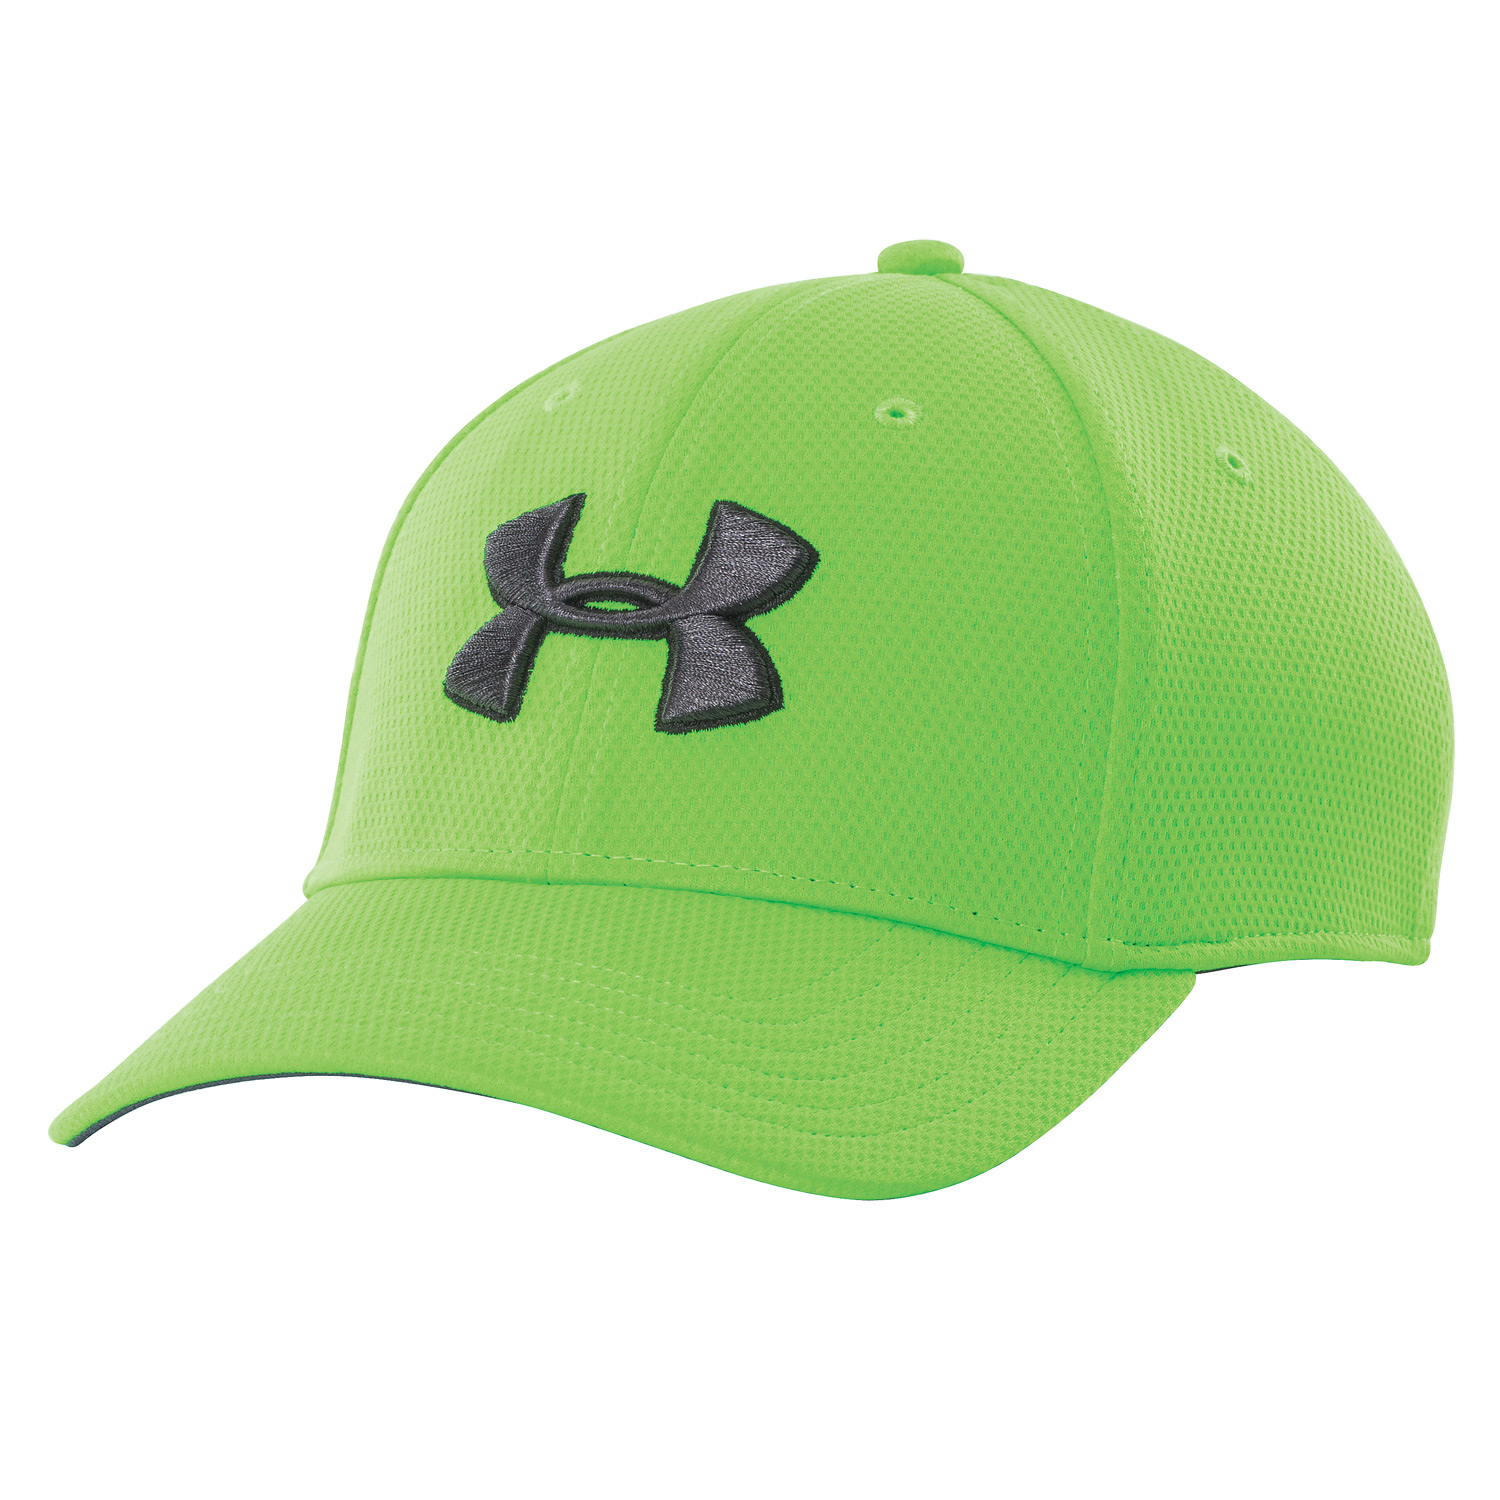 Men's UA Blitzing II Stretch Fit Cap (Neon Green)-Under Armour